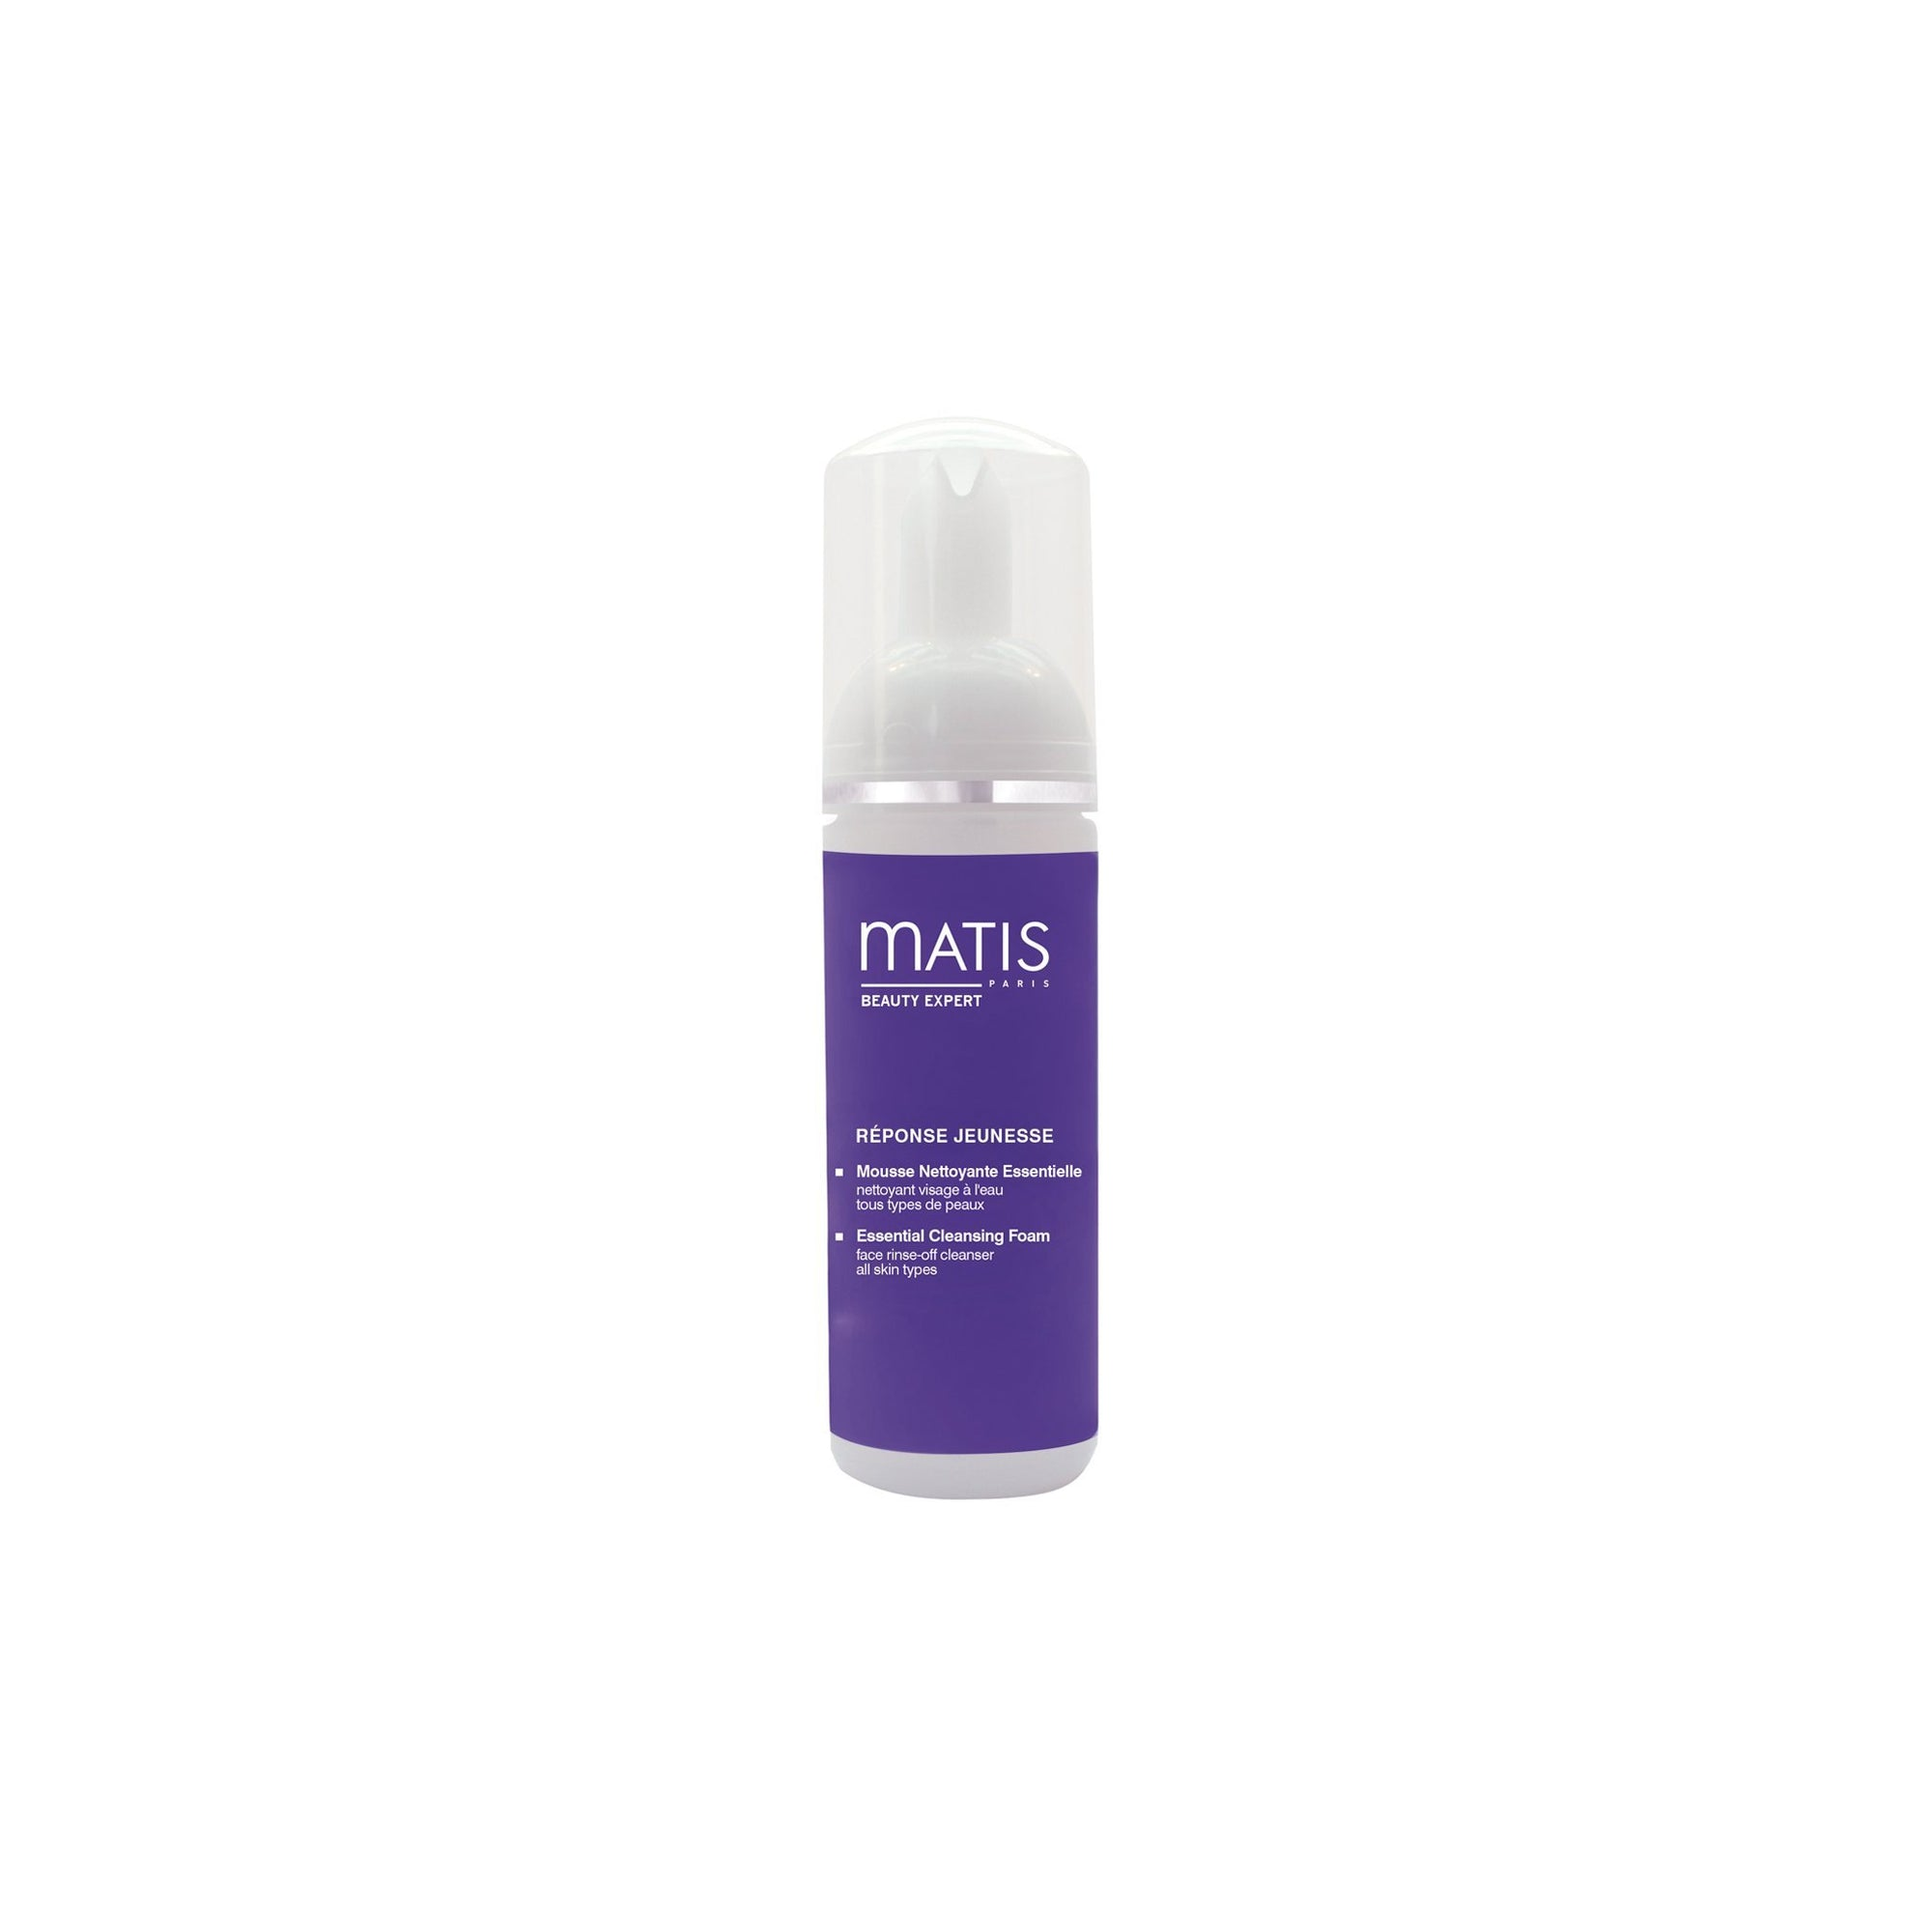 Matis Youth Response Essential Cleansing Foam 150ml